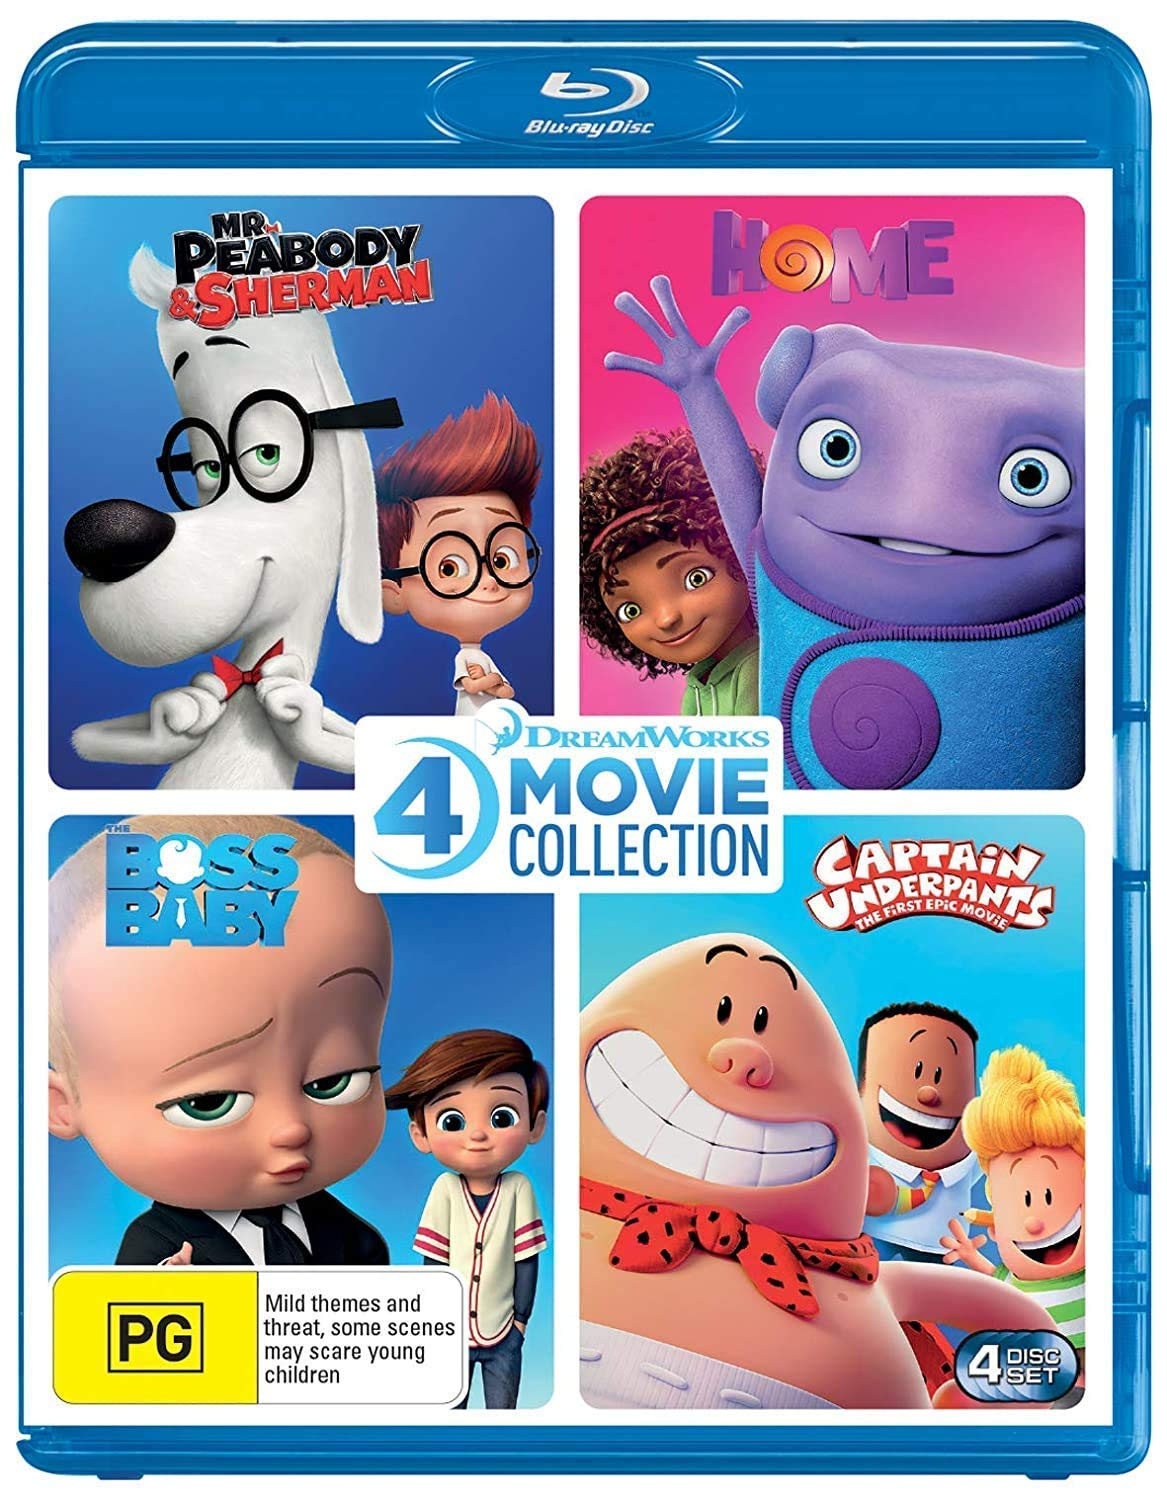 Dreamworks 4 Film Collection (Mr Peabody & Sherman/Home/Boss Baby/Captain Underpants)